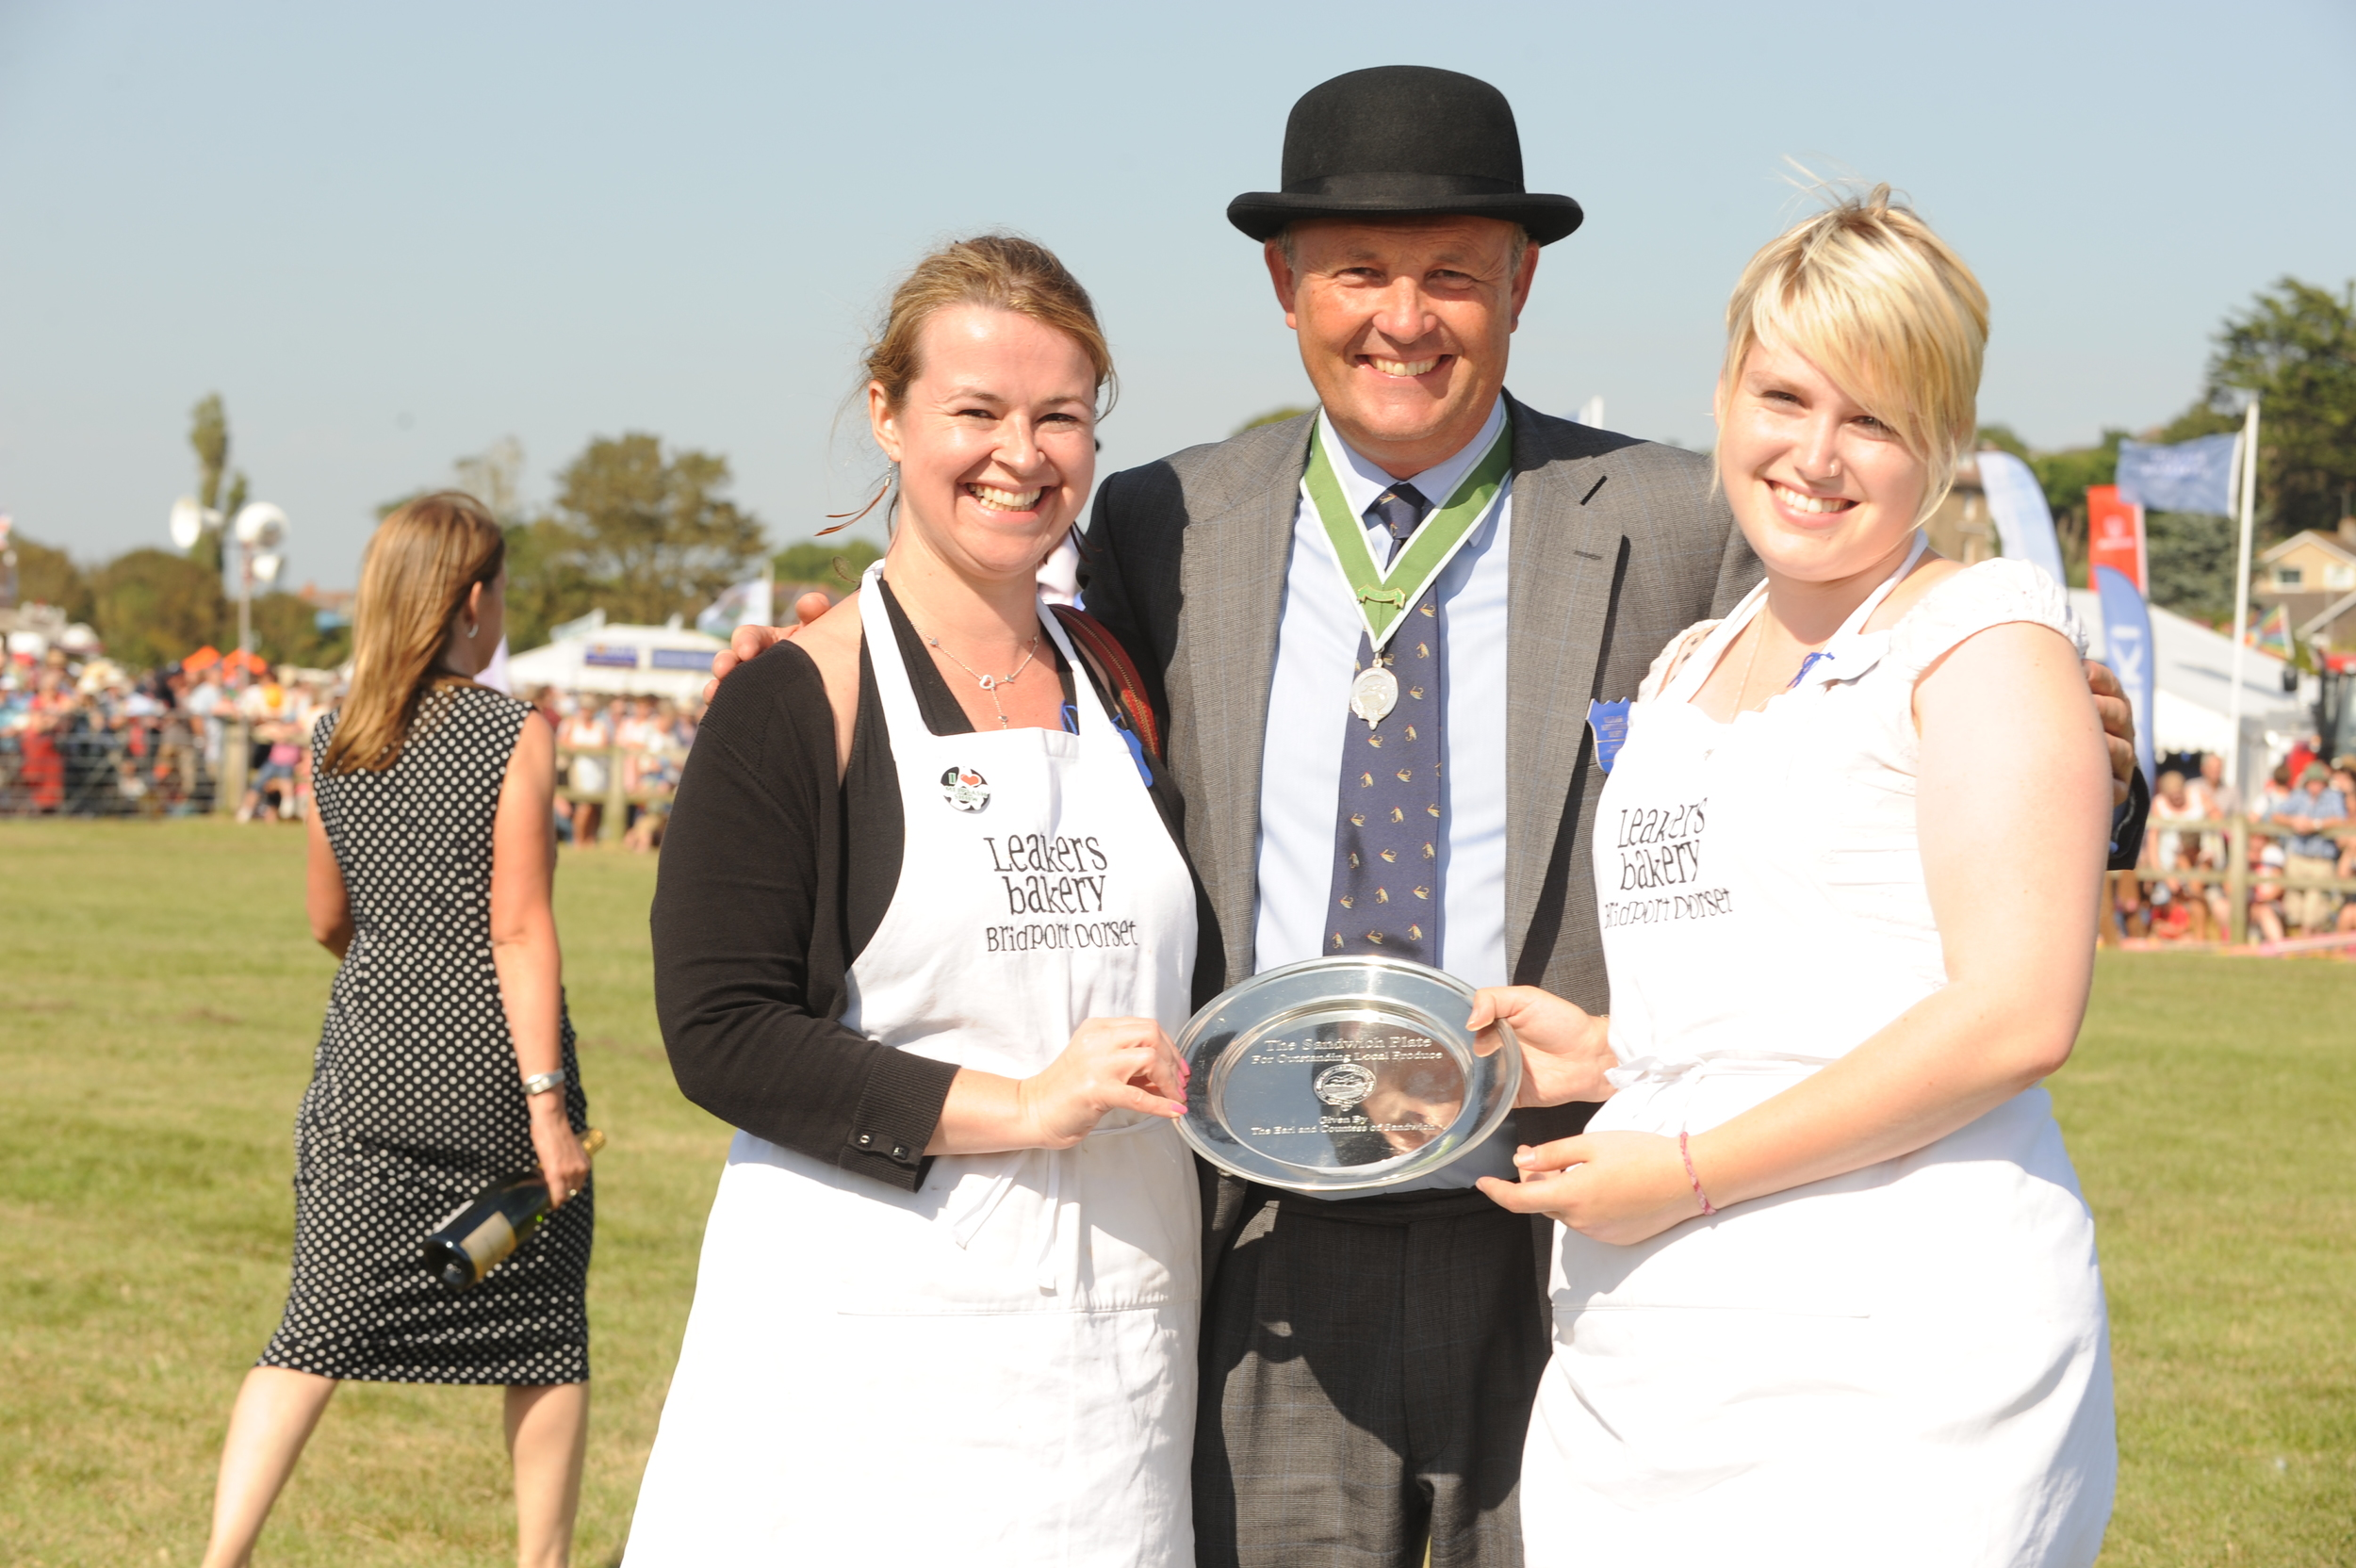 Leakers' Clare and Jemima with Cleeves Palmer receiving the Sandwich Plate for Outstanding Local Produce at this year's Melplash Show.